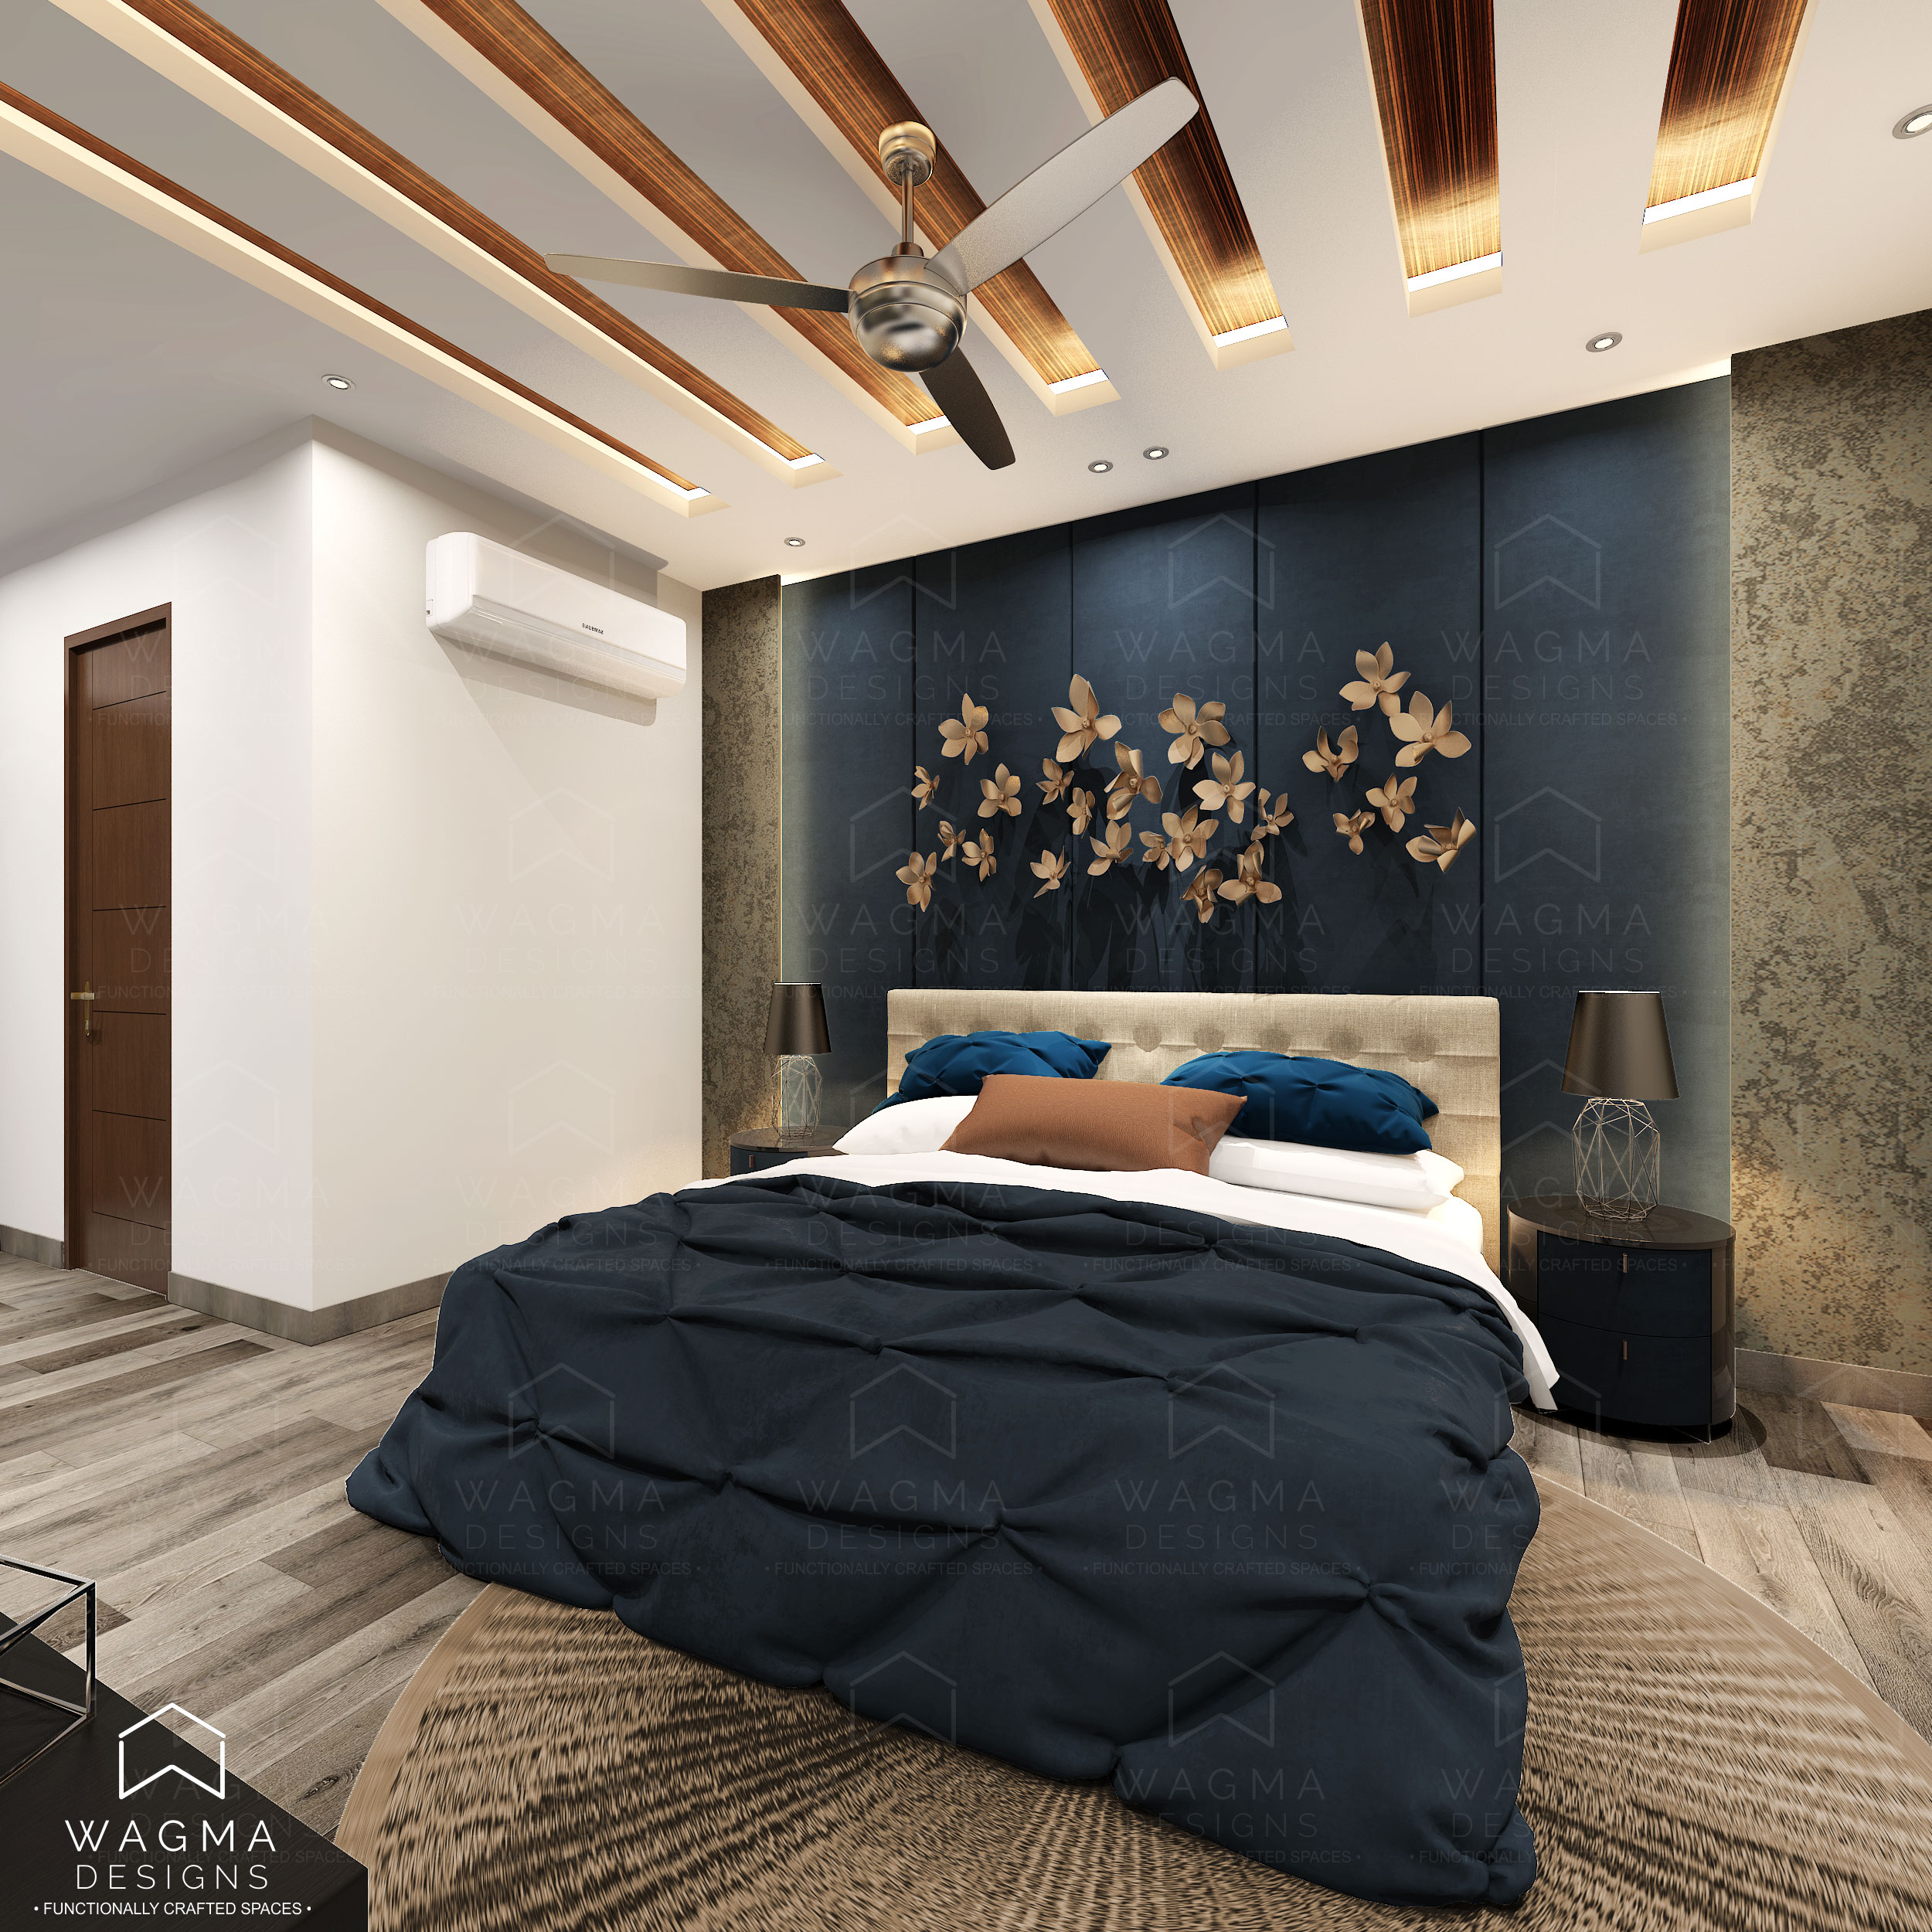 Interior Decorator in Gurgaon